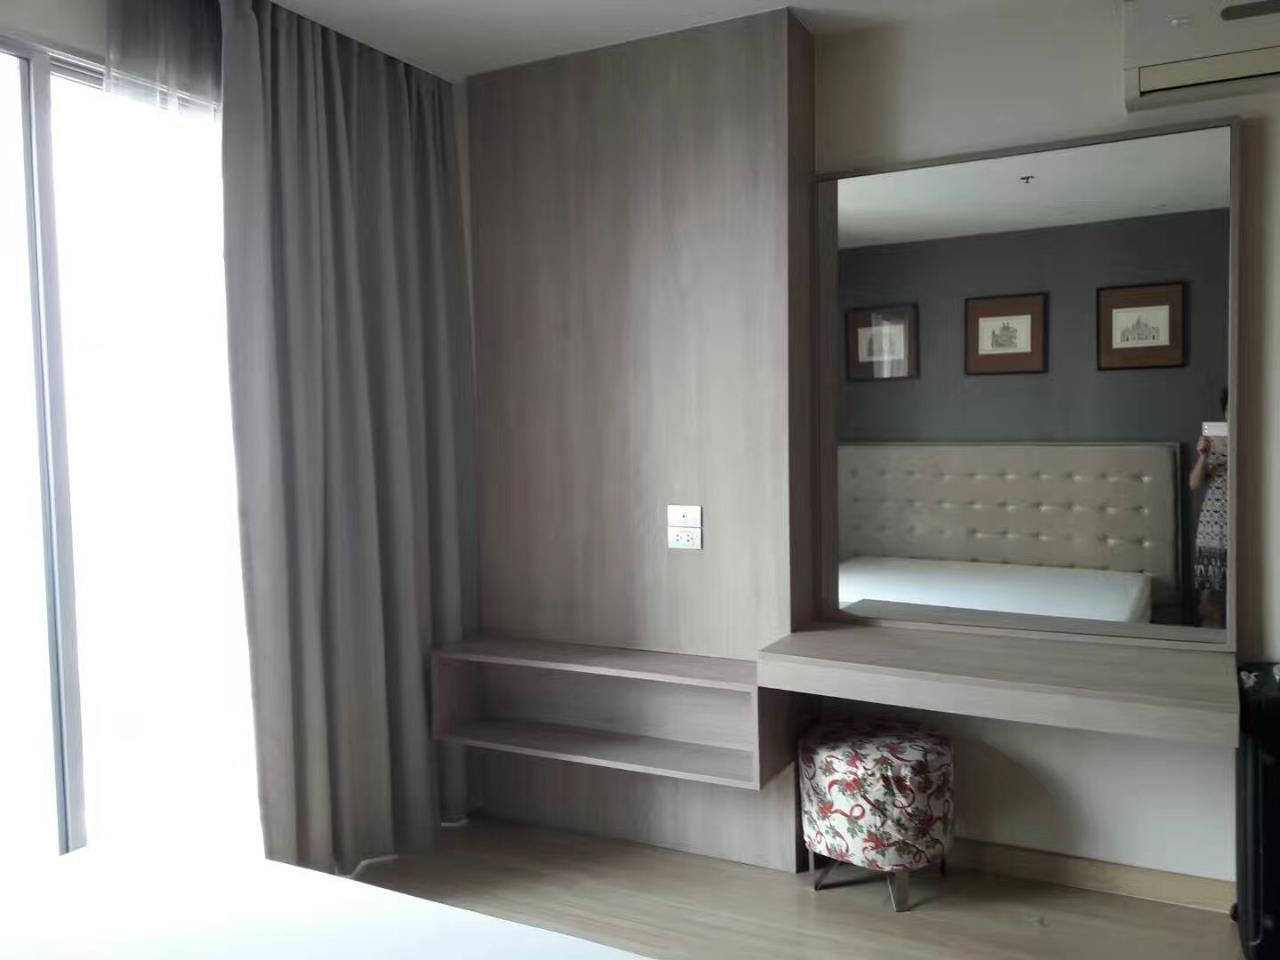 RE/MAX All Star Realty Agency's Skywalk one bedder for rent (BTS Phra Khanong) 2